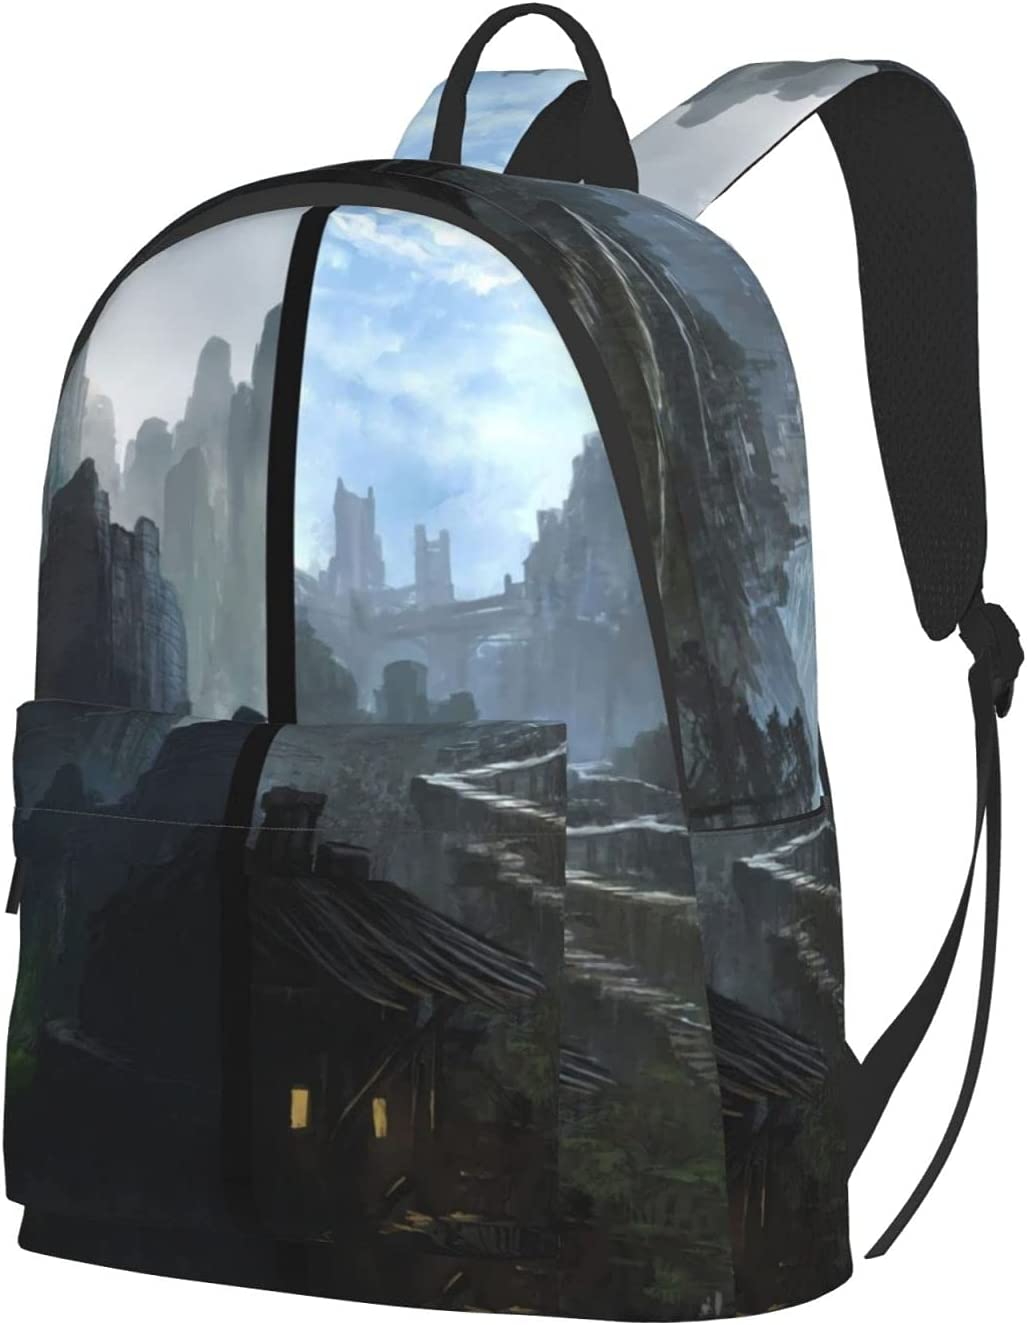 Large Direct store Capacity Backpack Water-Resistant Sho Small Purse Max 70% OFF